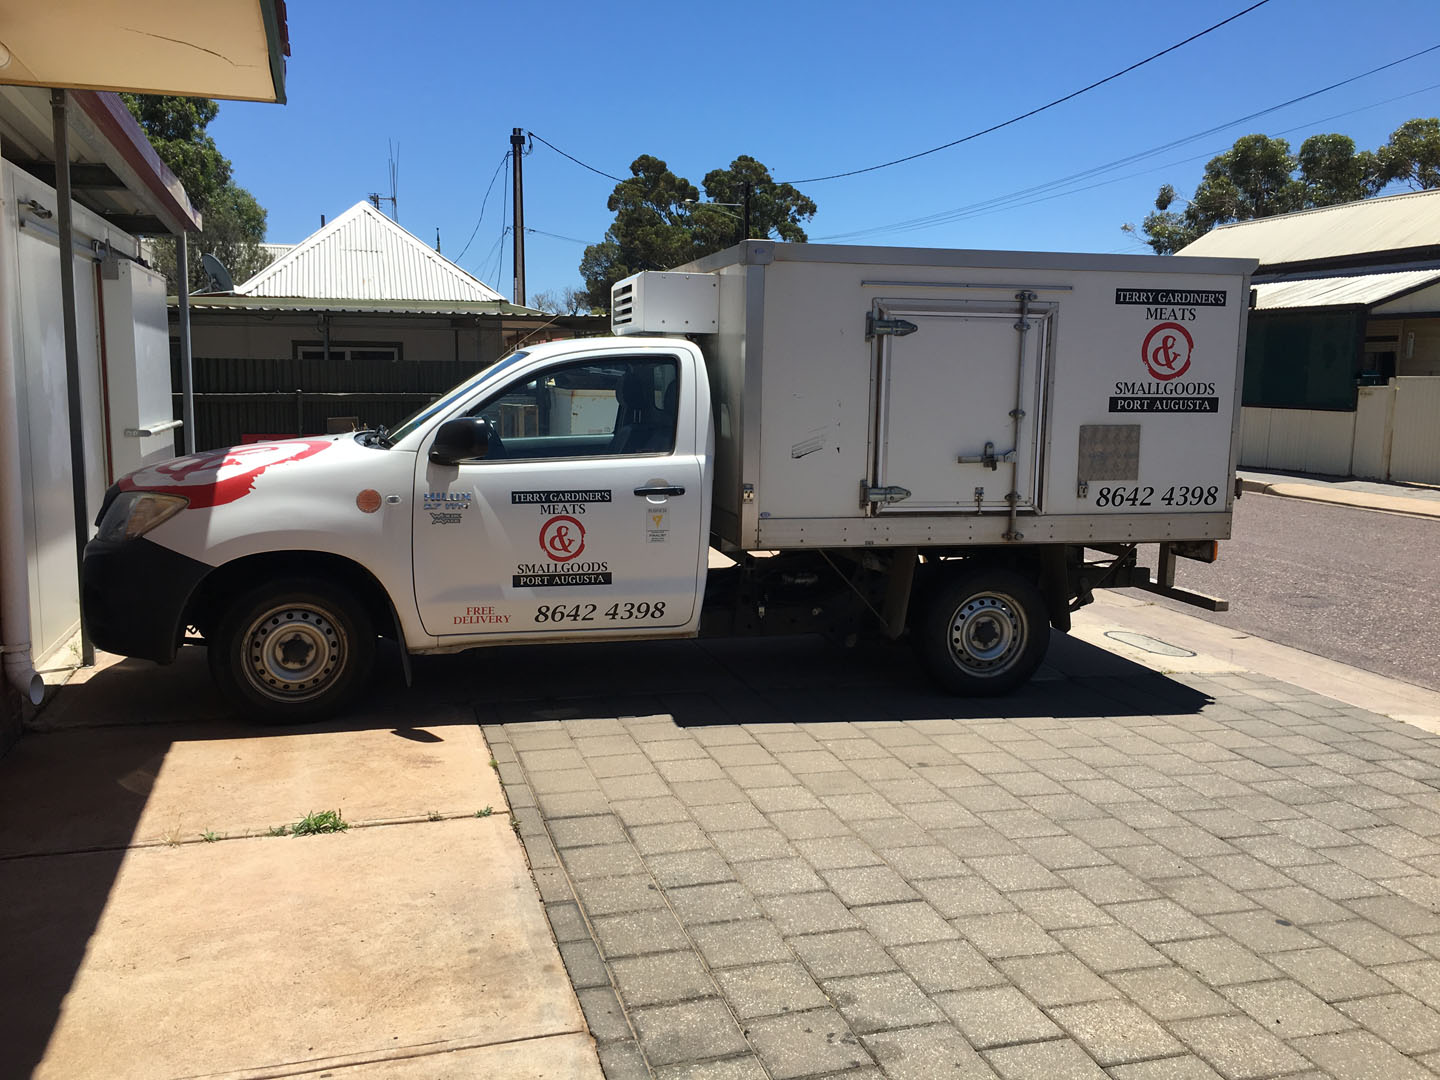 terry-gardiners-meats-and-smallgoods-port-augusta-deliveries-truck